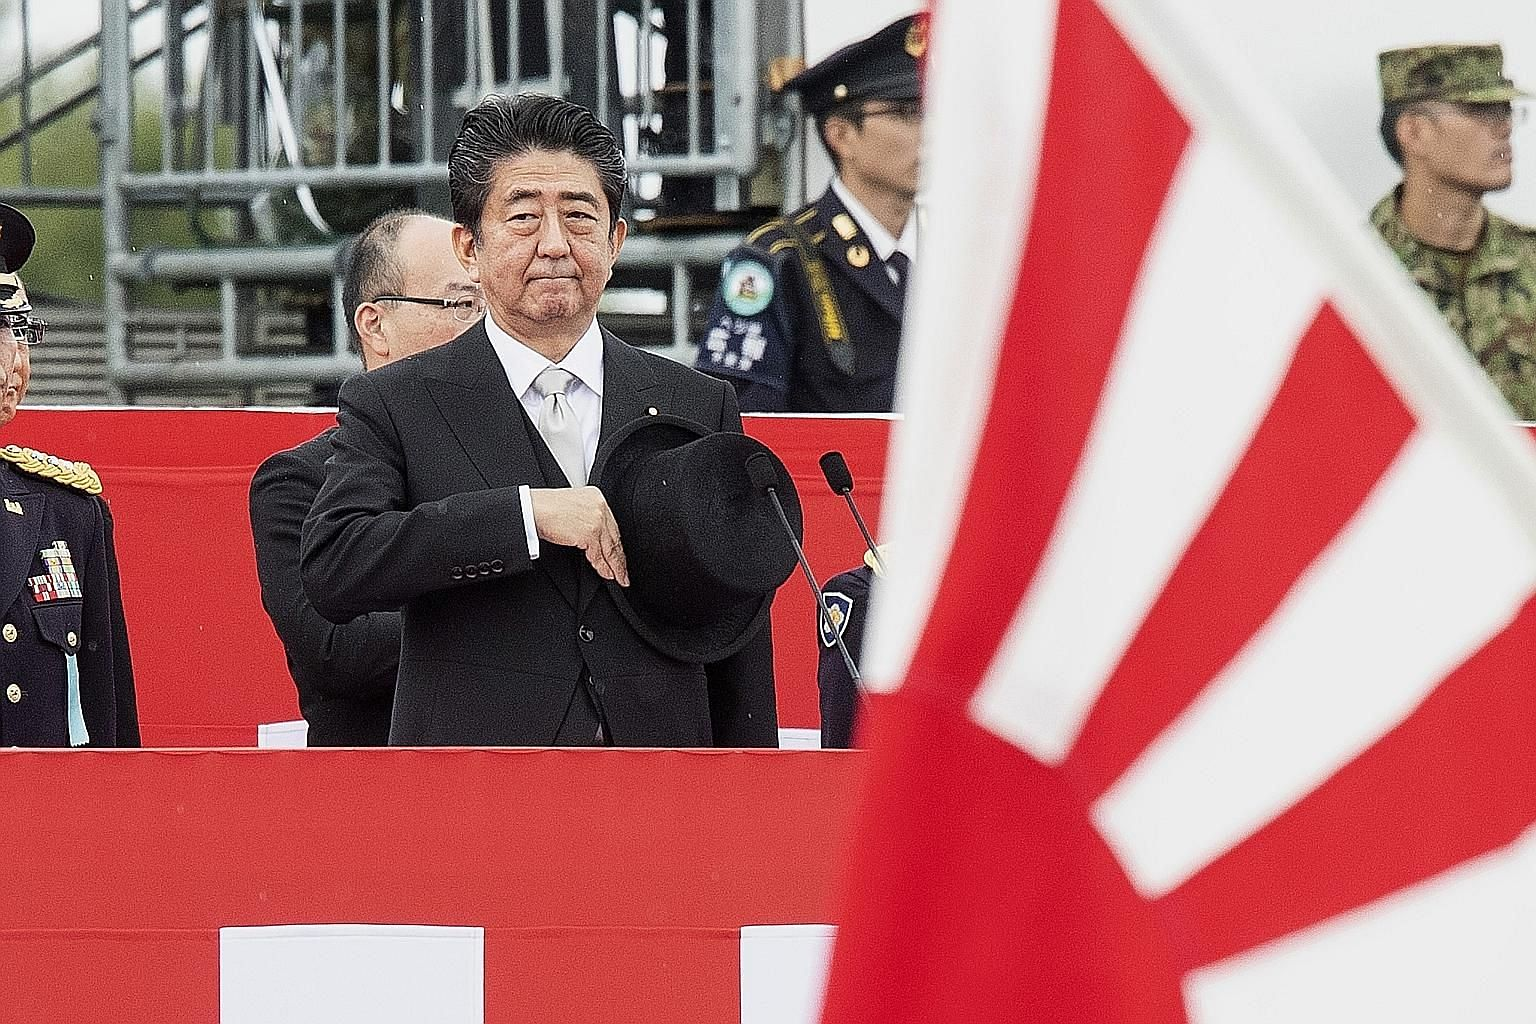 Japanese Prime Minister Shinzo Abe saluting Self-Defence Forces troops in a parade in October. Japan's Cabinet has approved the country's first aircraft carriers since World War II by retrofitting two helicopter destroyers.